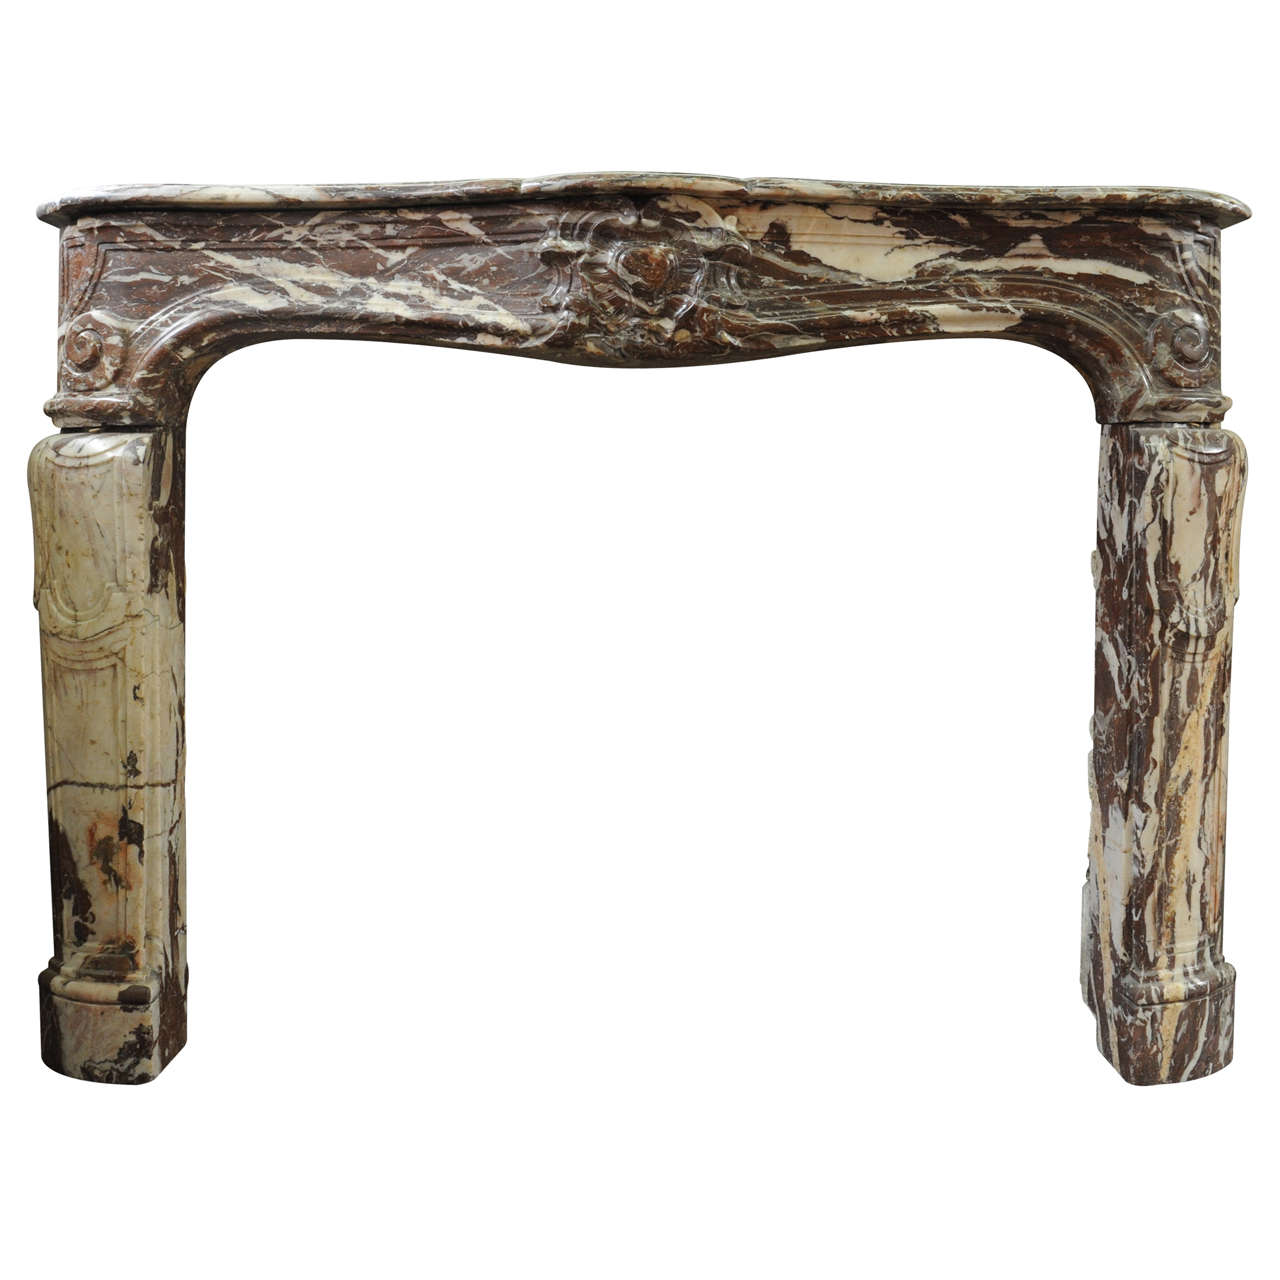 An 18th century French Louis XIV marble fireplace / mantel piece, circa 1730 1